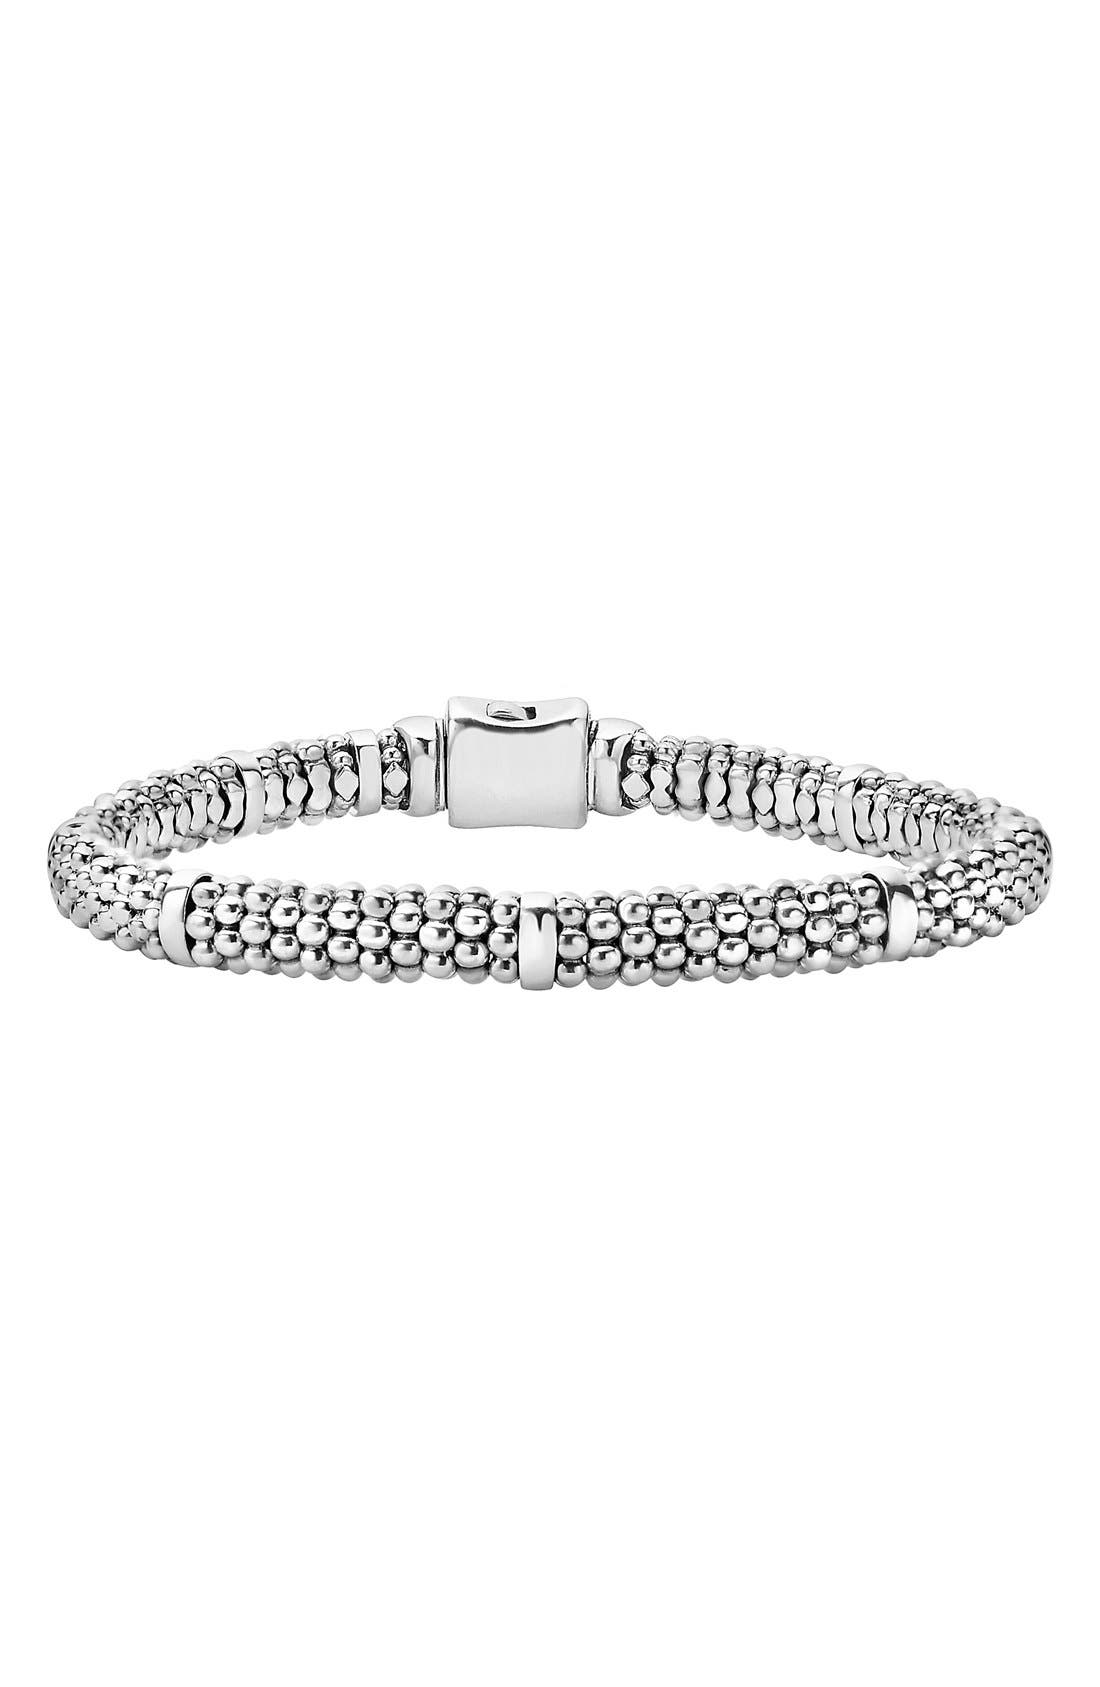 Caviar Rope Station Bracelet,                             Main thumbnail 1, color,                             STERLING SILVER